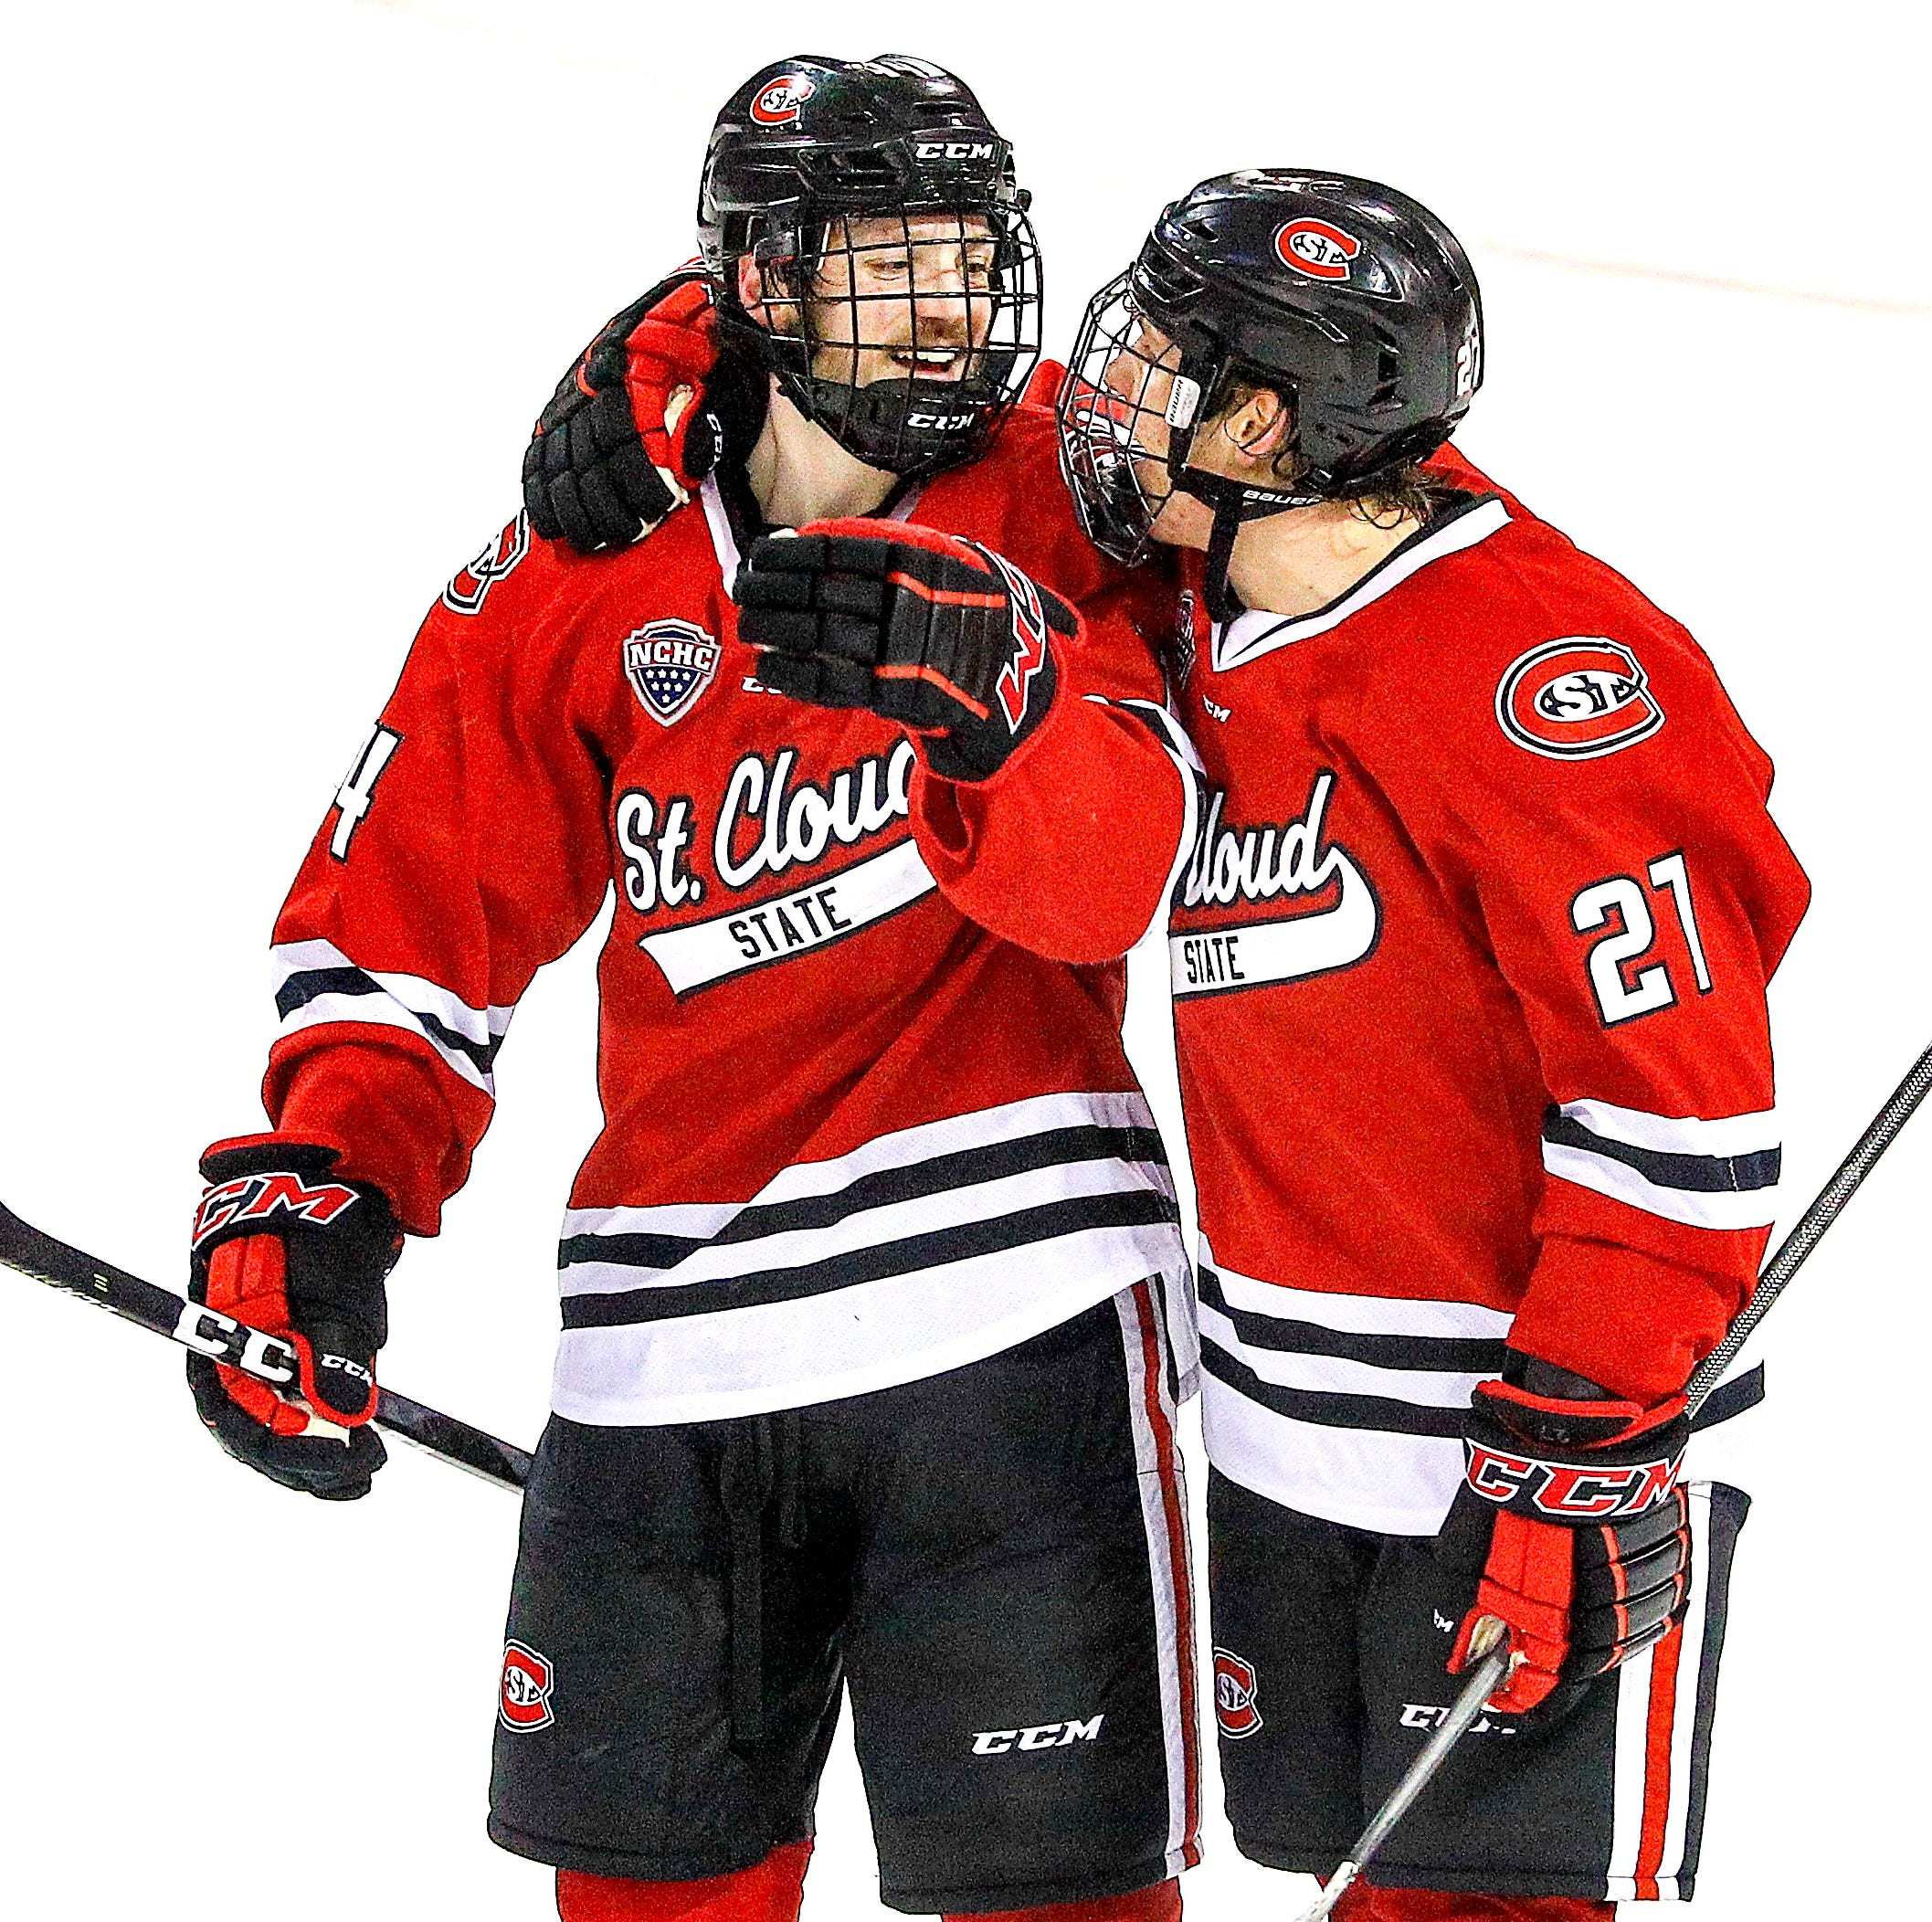 Patrick Newell (14) and Blake Lizotte of the St. Cloud State Huskies celebrate a late third period goal during Saturday's game at Amsoil Arena in Duluth, Minn.